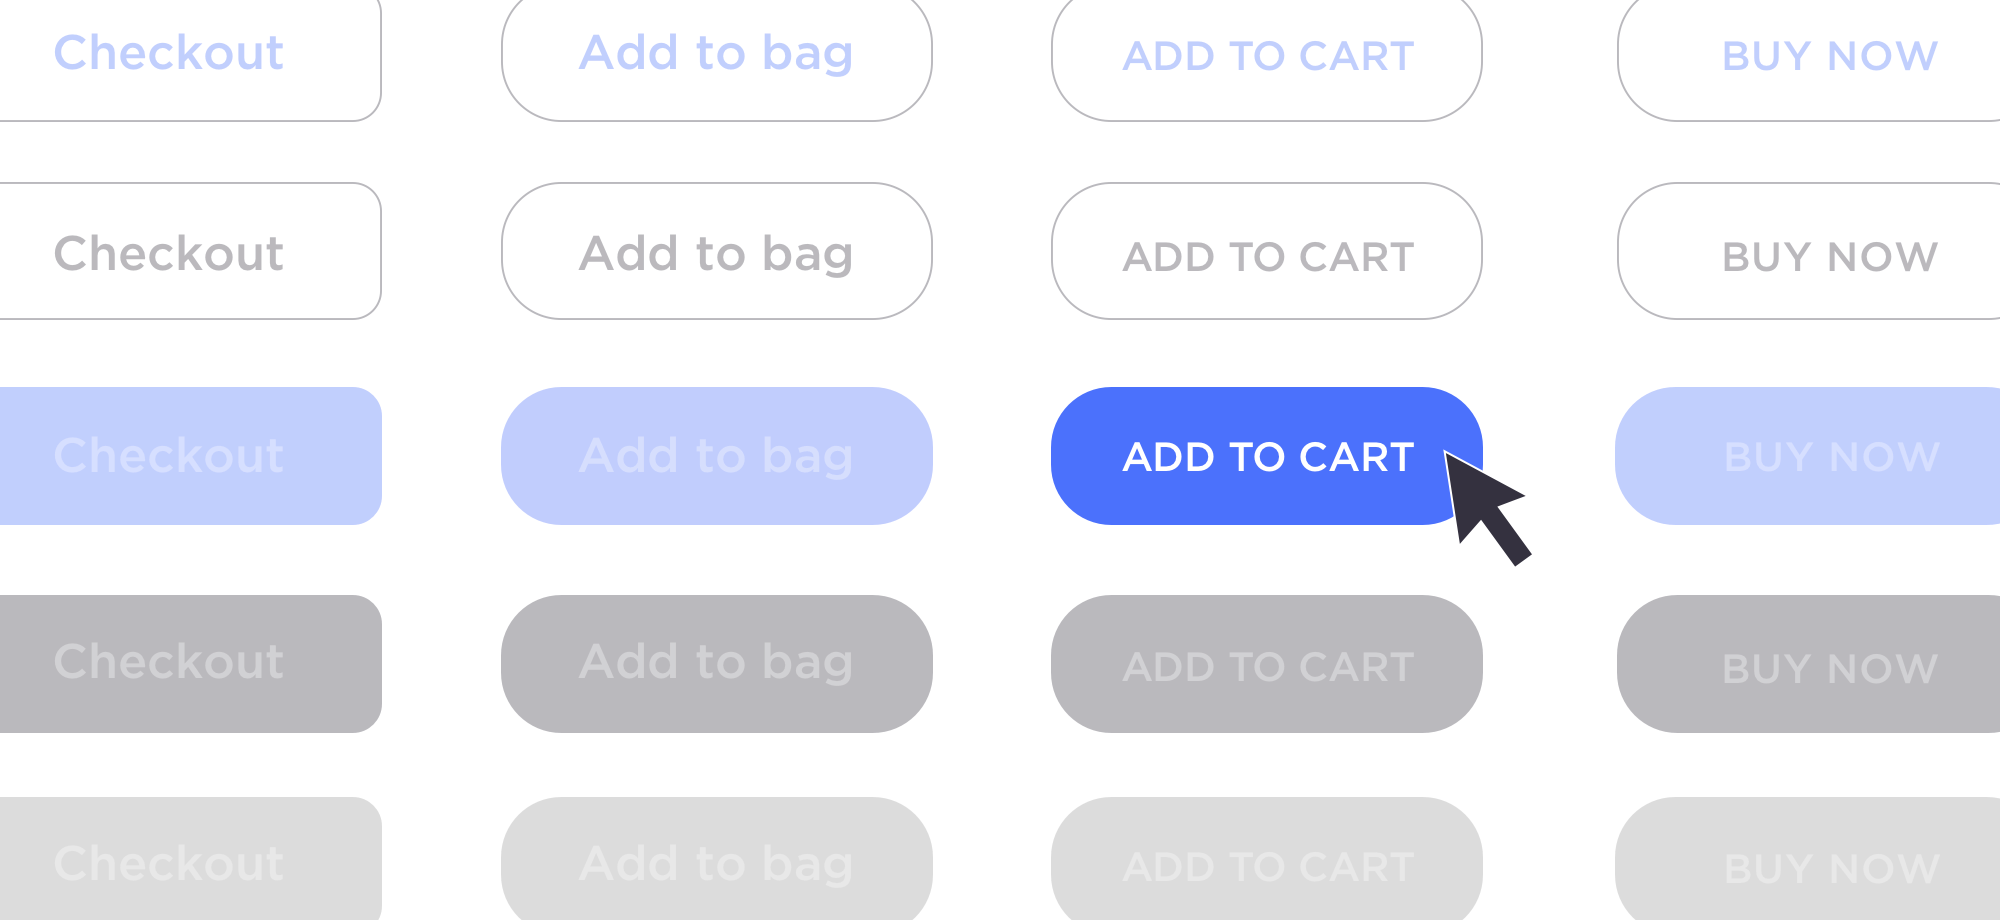 how to craft ecommerce ctas that convert [with 12 examples inside]